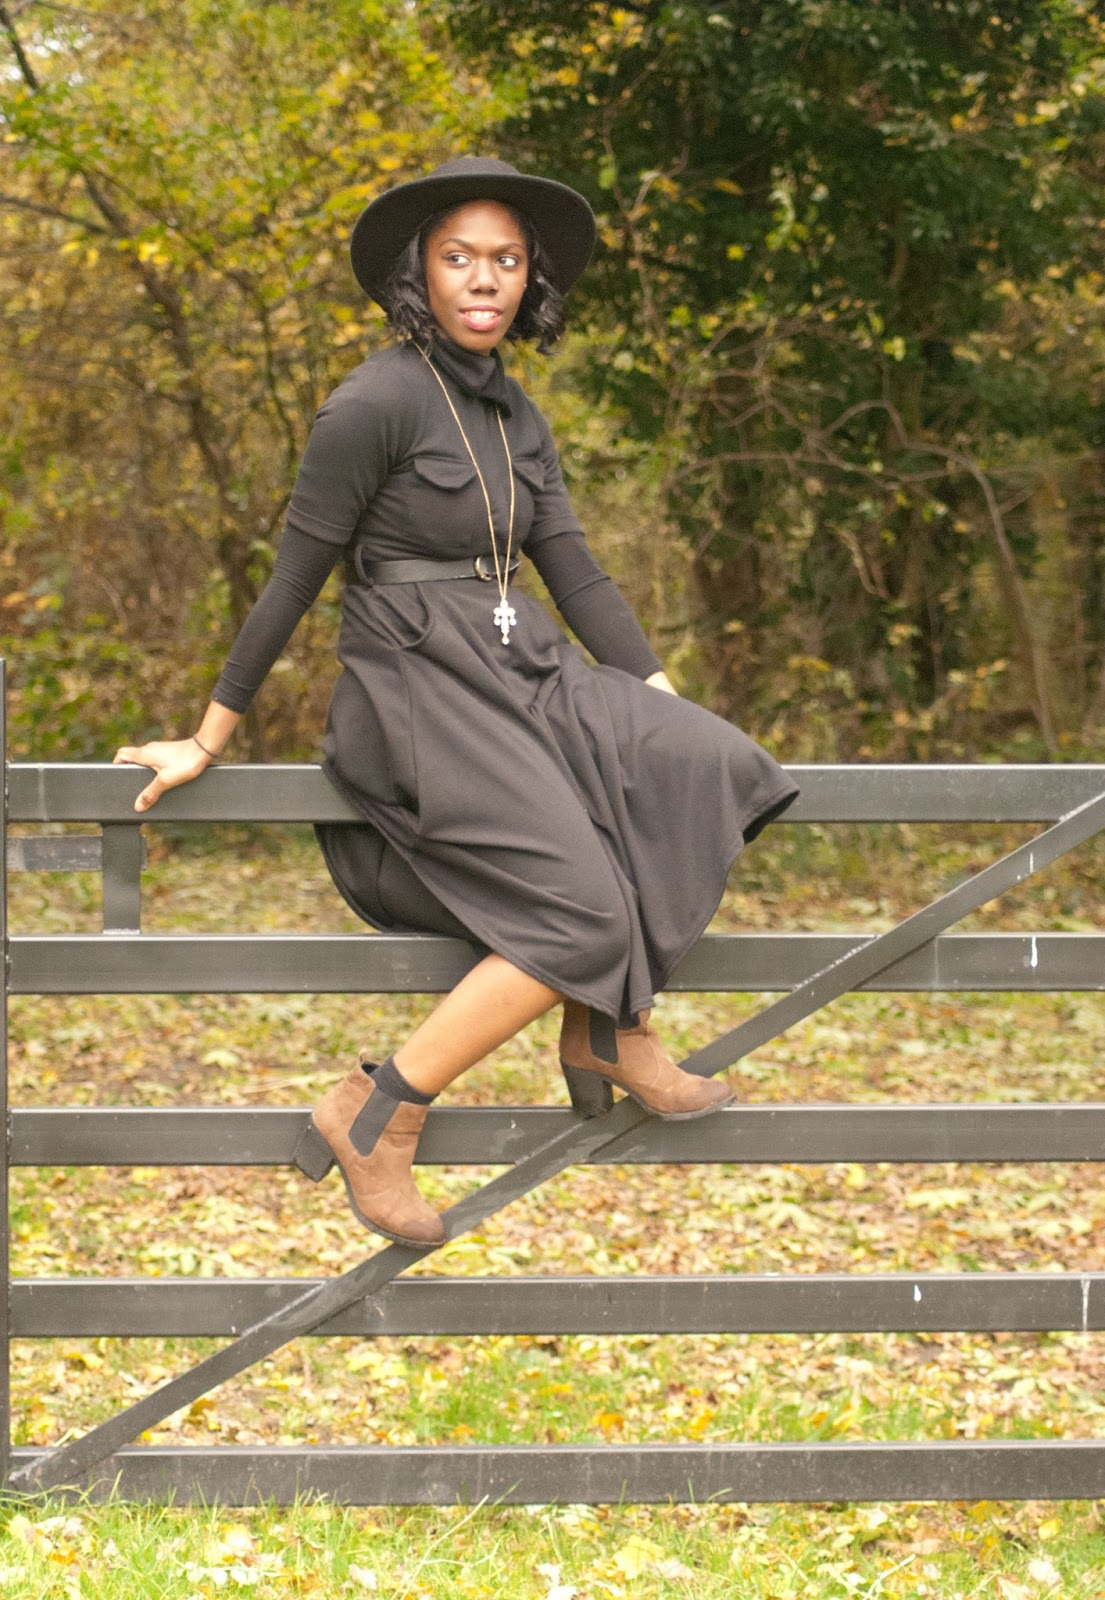 Boohoo duster coat, Boohoo black midi dress, fryent country park, fashion blogger, 100 Ways to 30, Style & Fashion